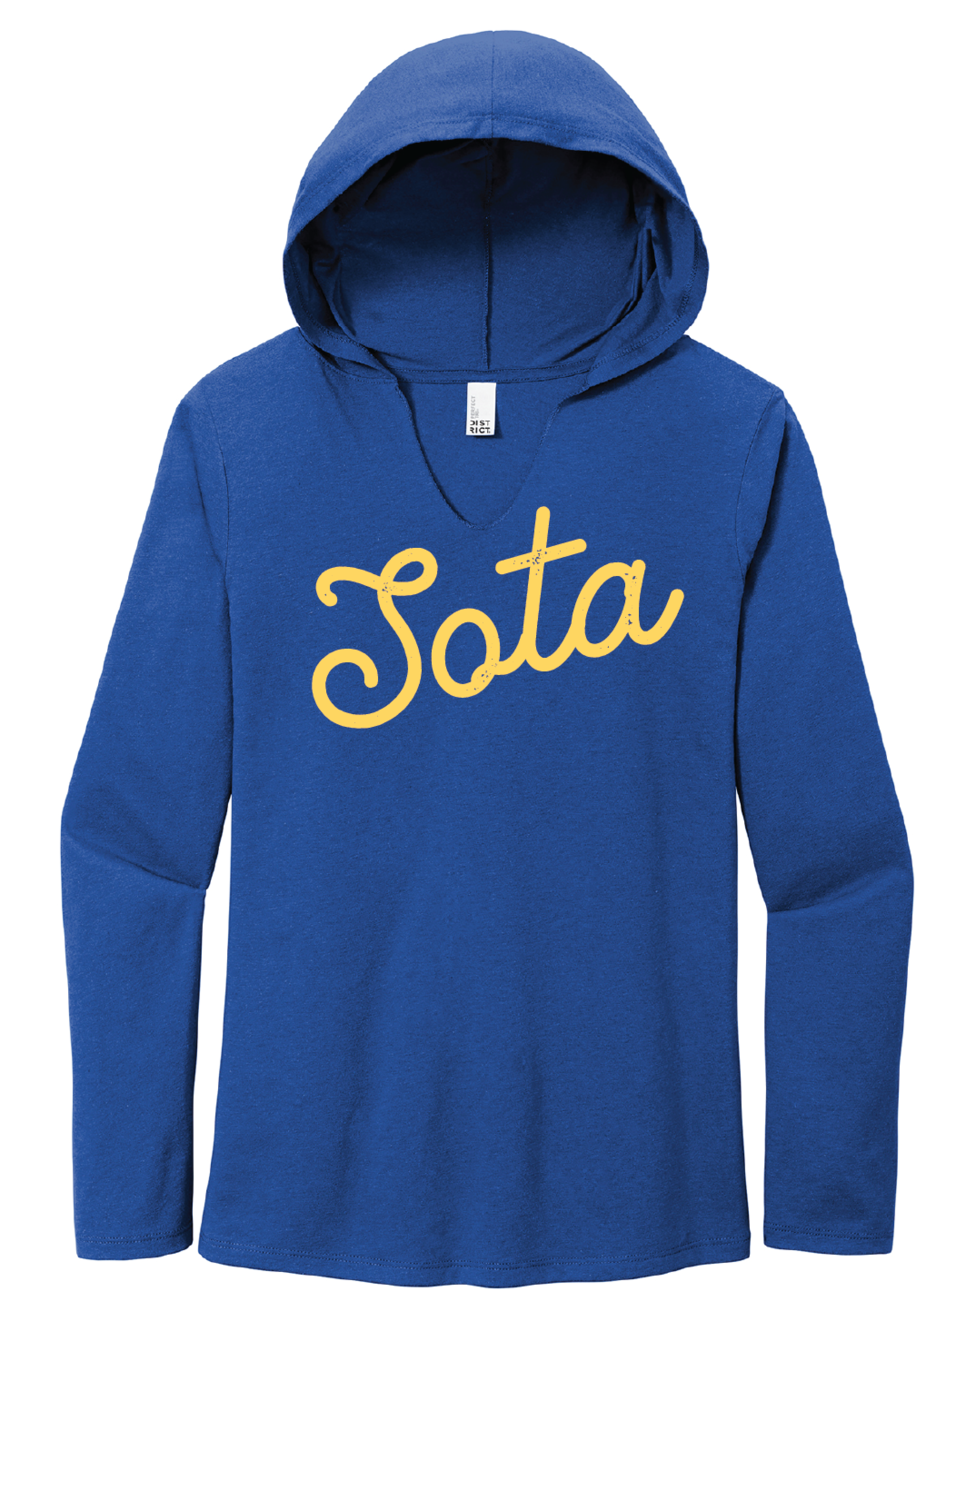 Sota Hooded Shirt